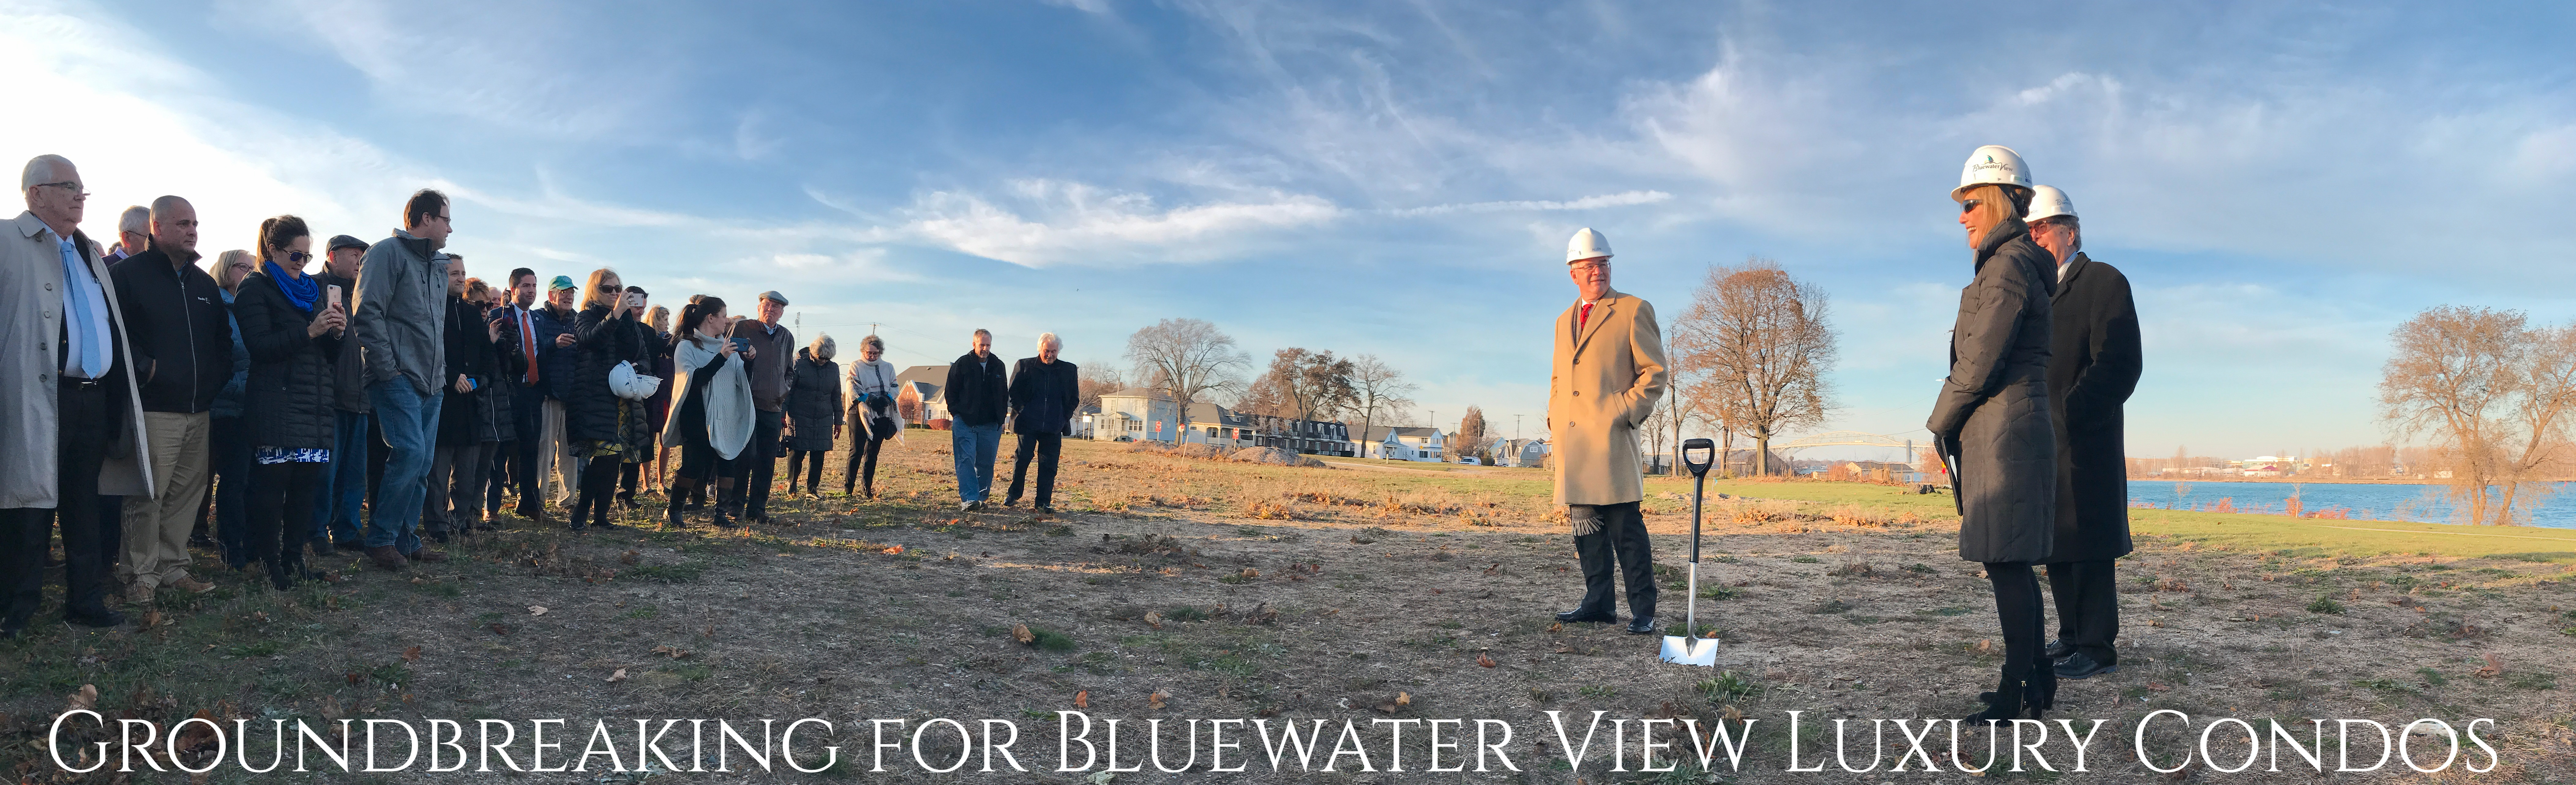 Everything Blue Water Television - News and Information